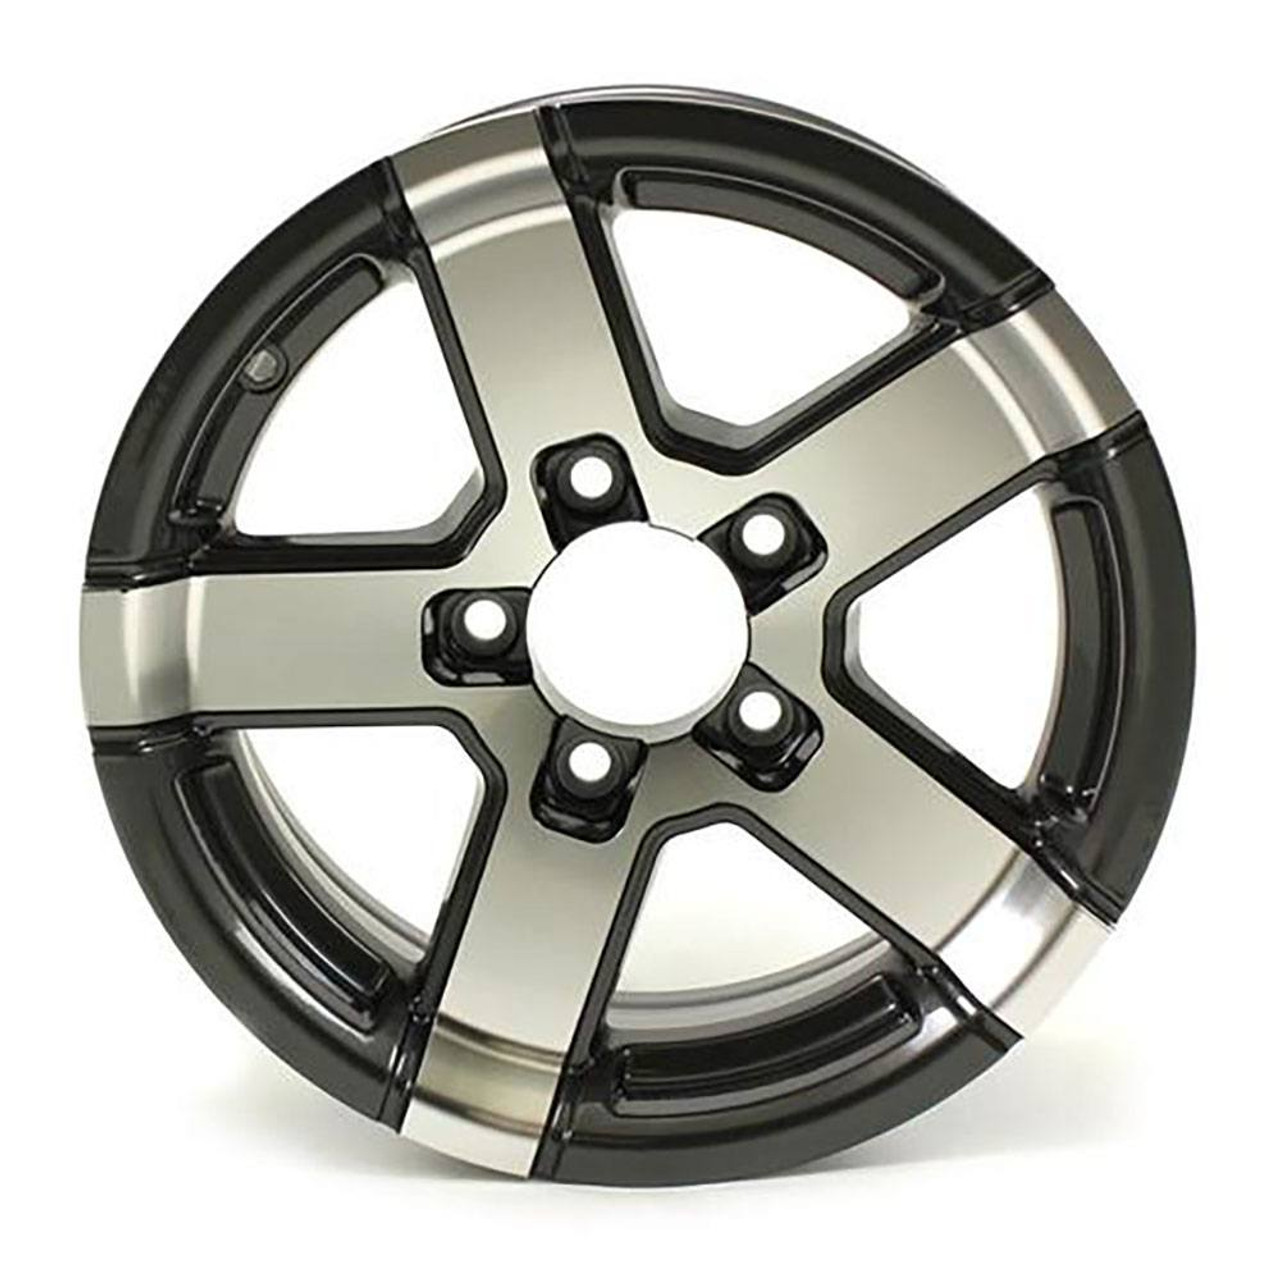 "14X5.5 5-Lug on 4.5"" Aluminum Series 07 Trailer Wheel - Gray Accent - 745545G"